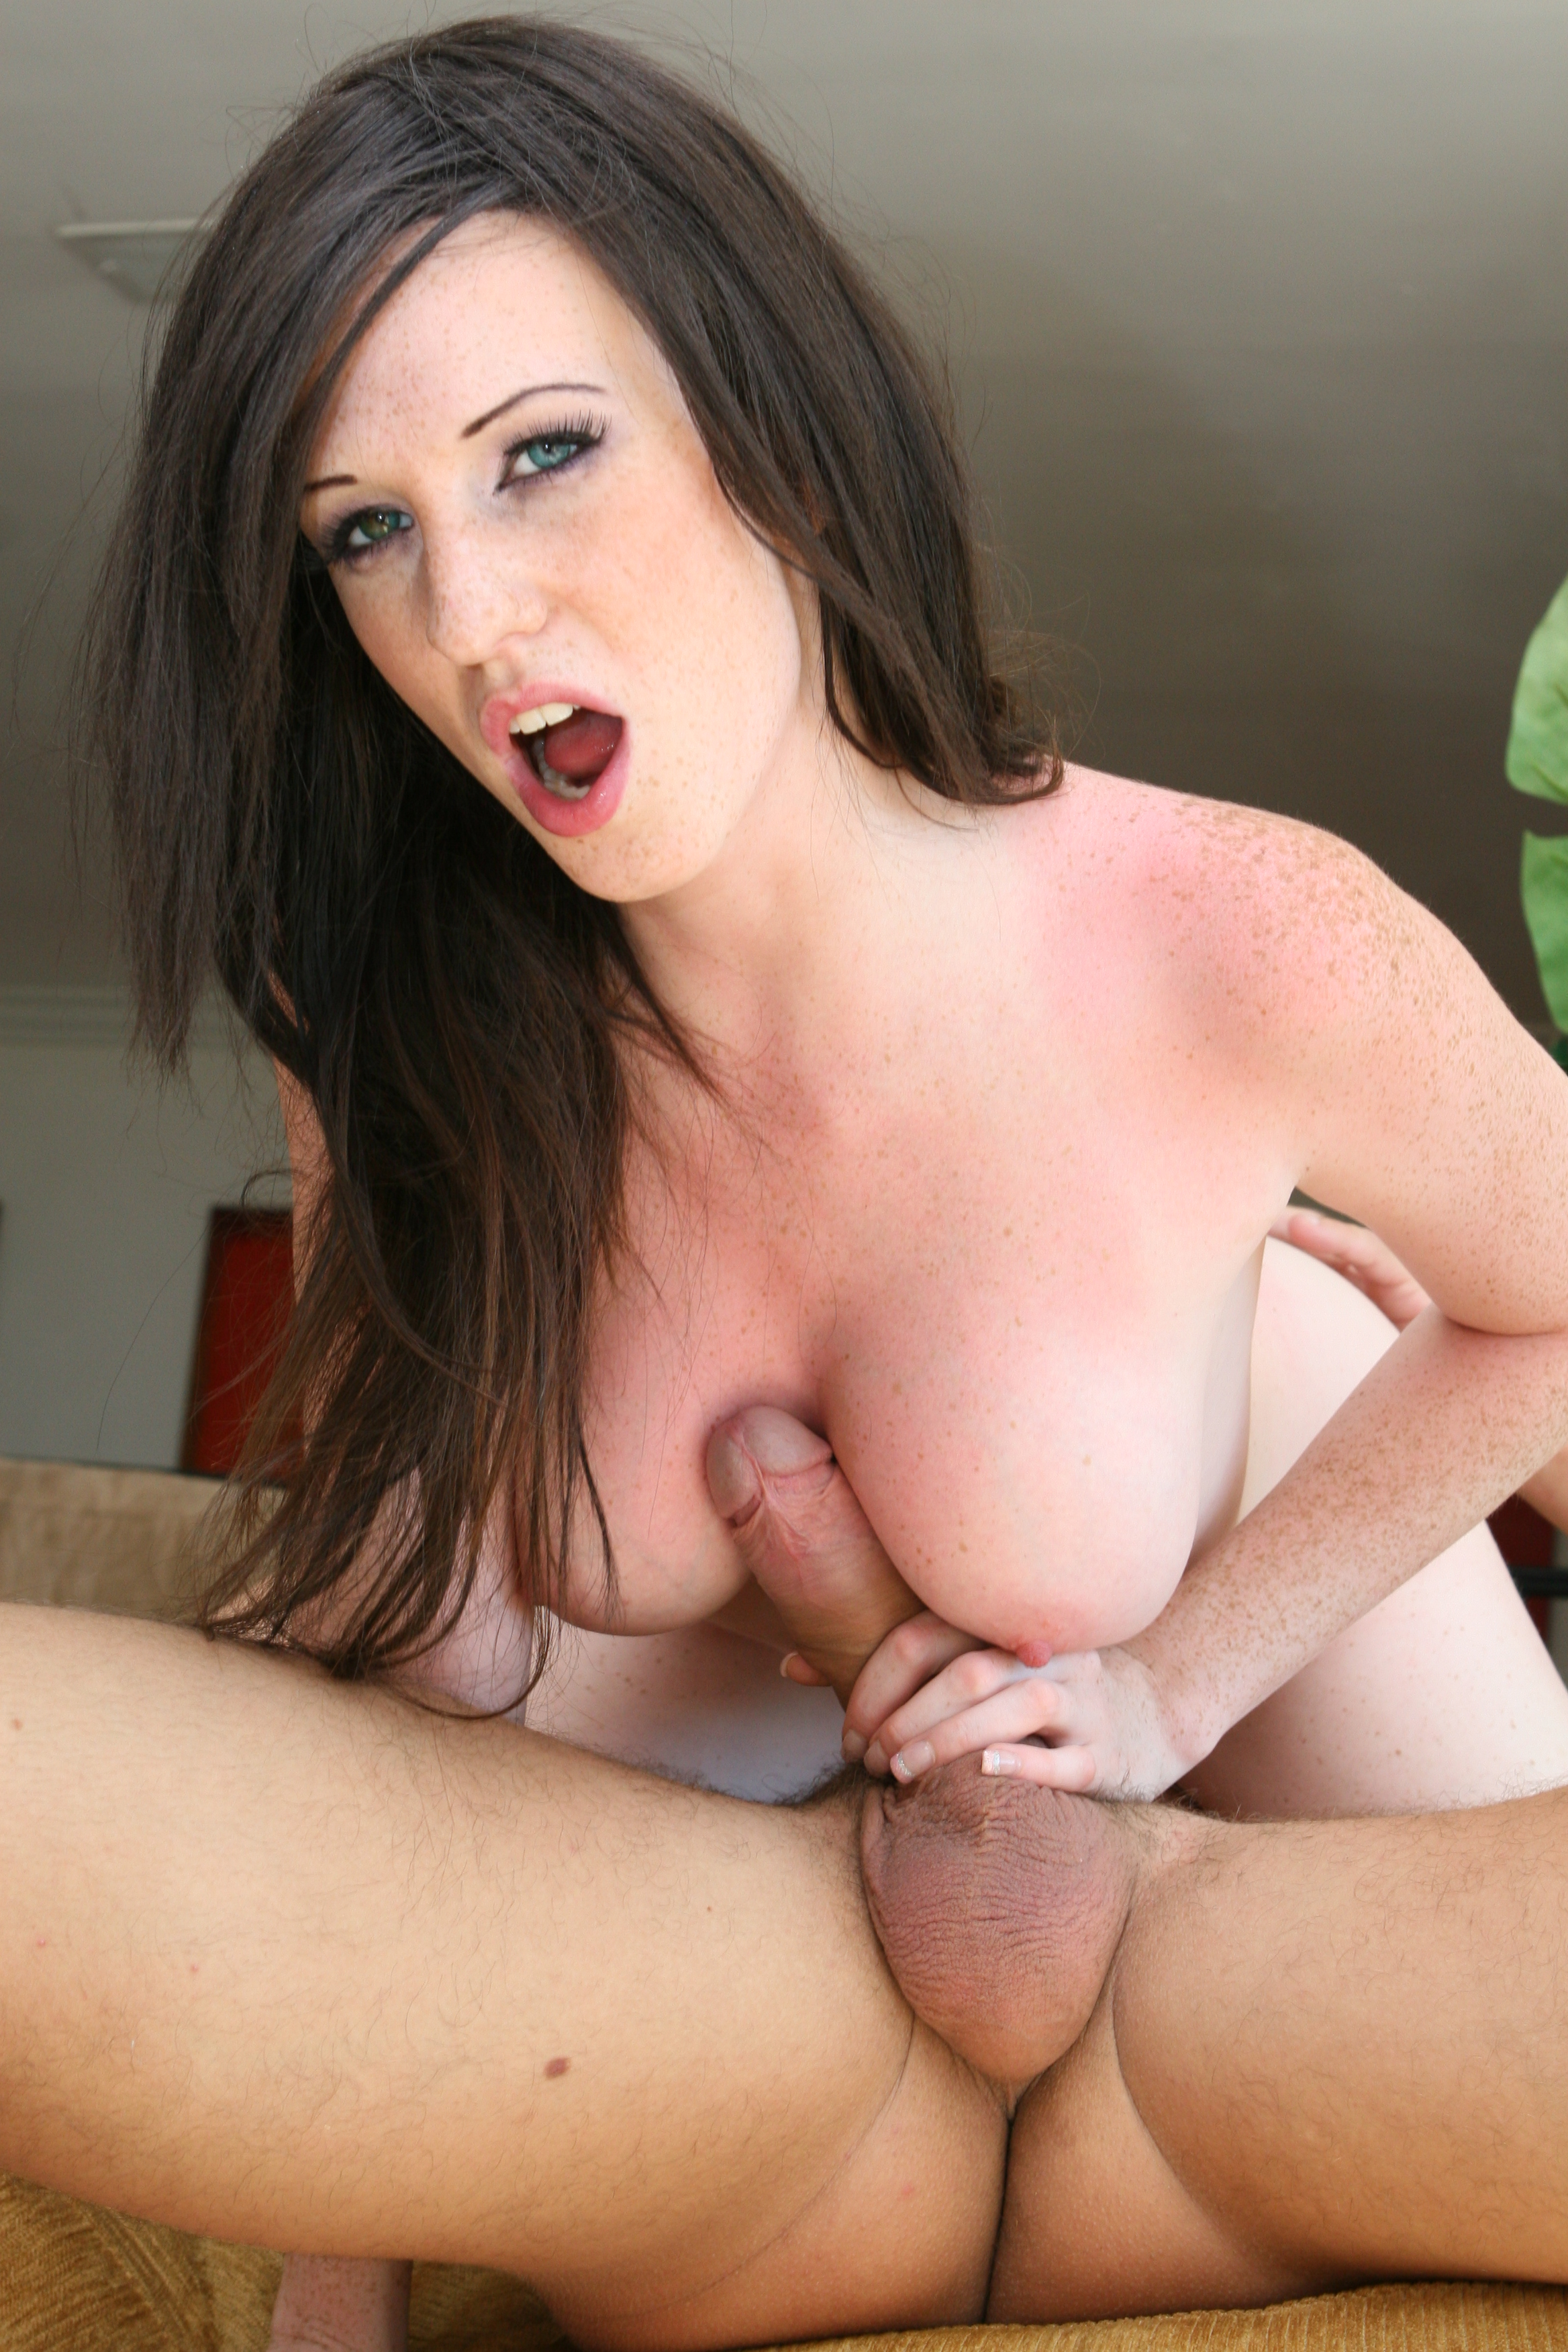 8Teenxx hdv pass christy west the irresistable scent of her sweet